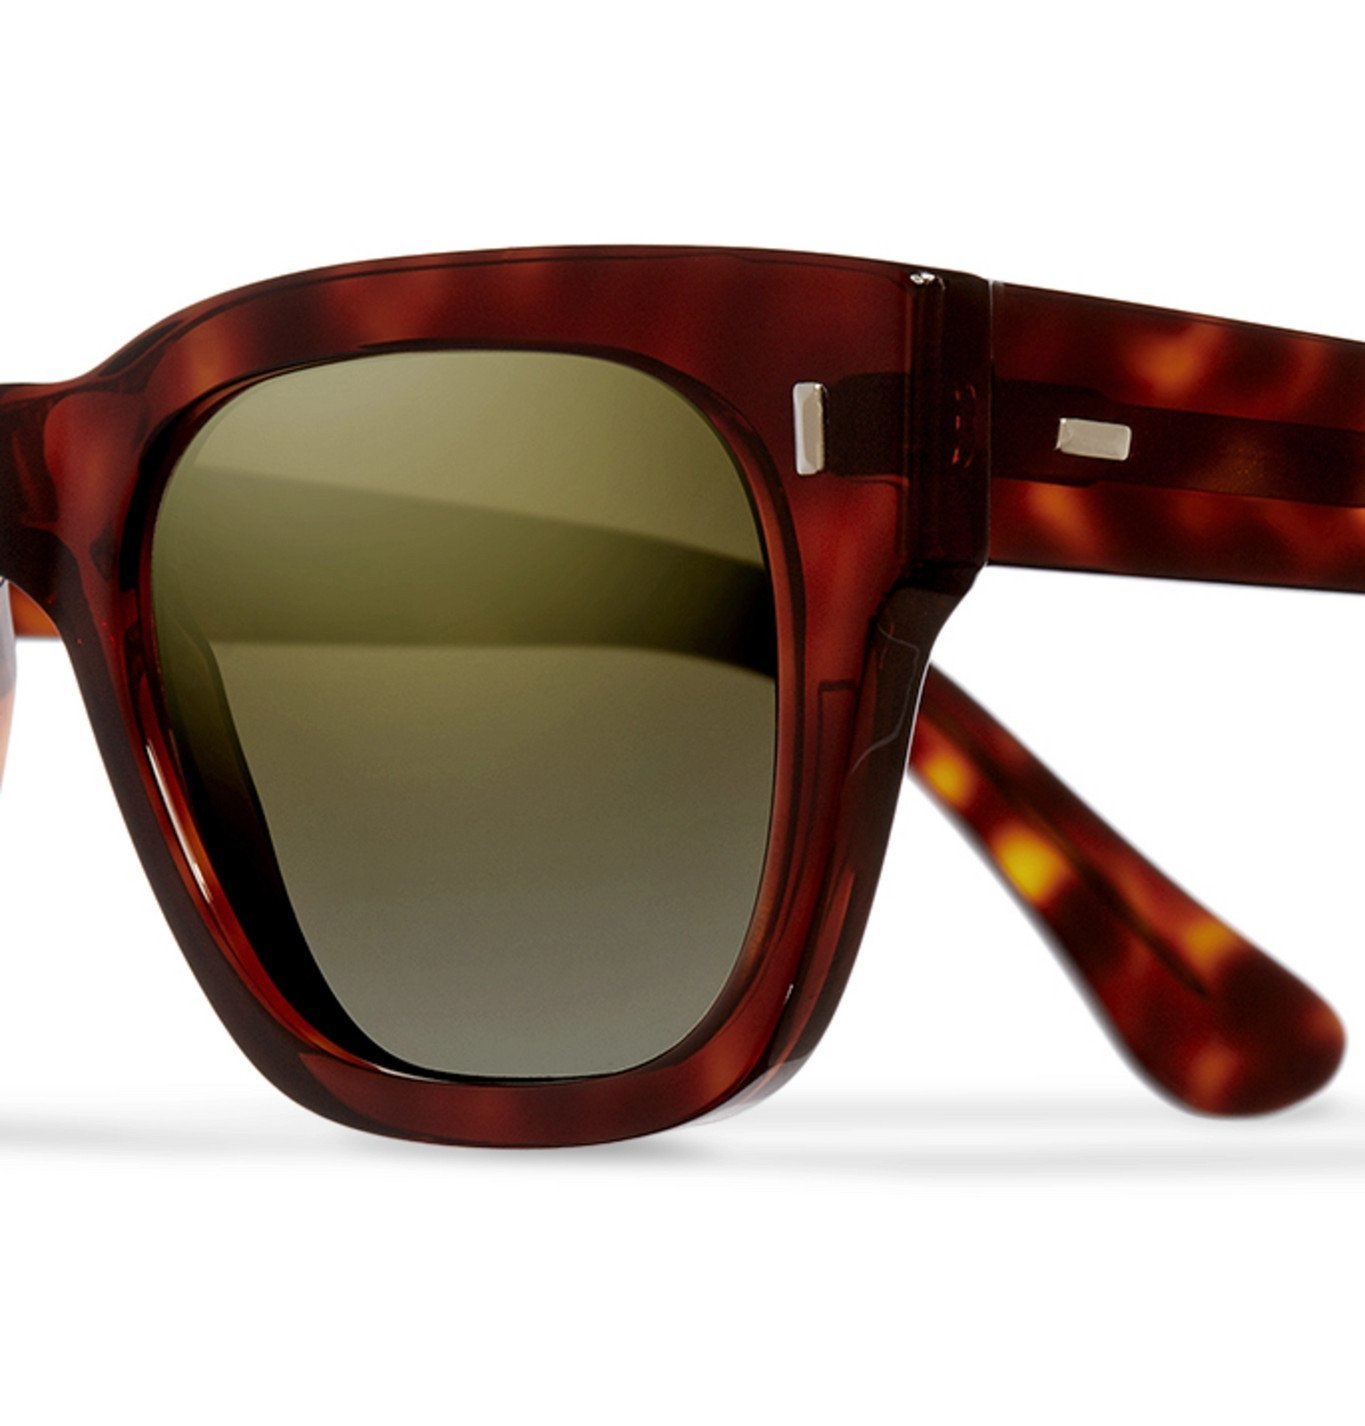 Cutler and Gross - D-Frame Tortoiseshell Acetate Sunglasses - Brown